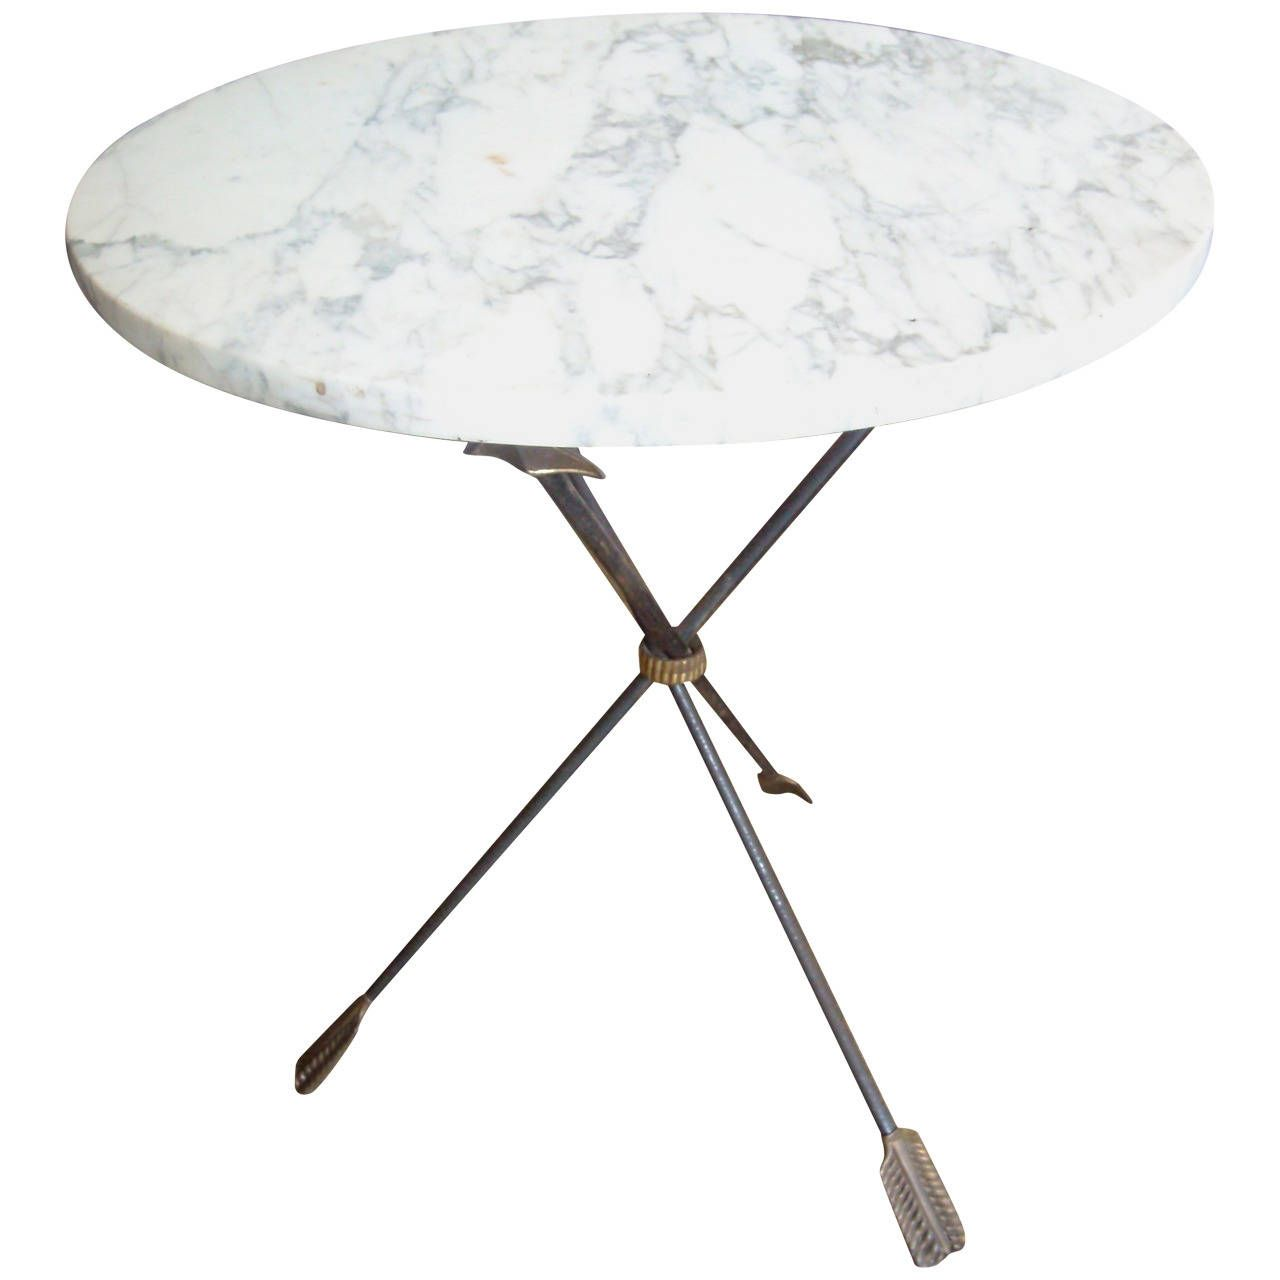 Italian Iron Brass and Marble Table Gueridon with Tripod base Gio